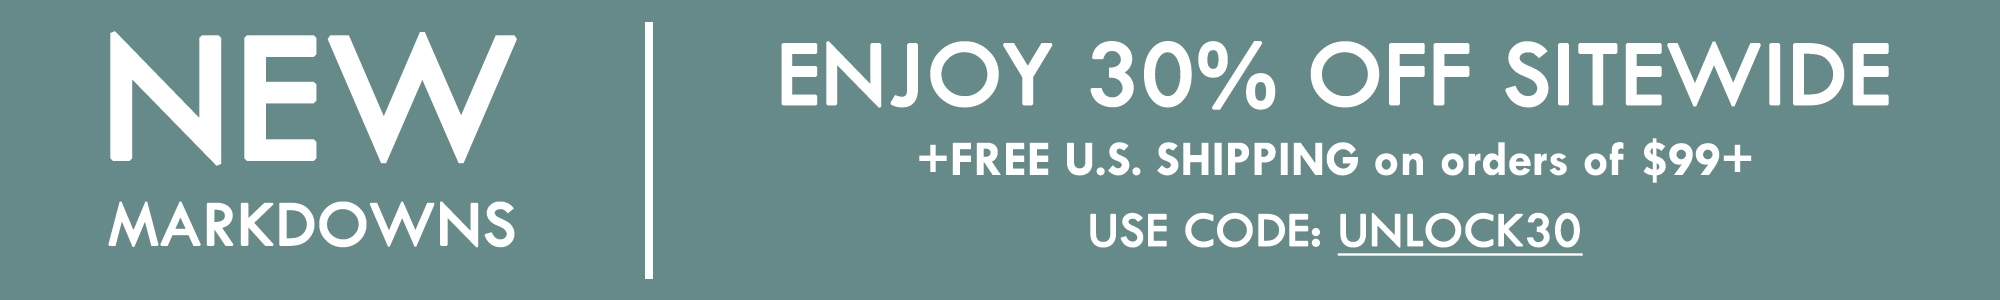 Shop Year End Sale - Save Up To 65% OFF On New Plus Size Markdowns - 4X to 8X Women's Plus Size Clothing on SALE